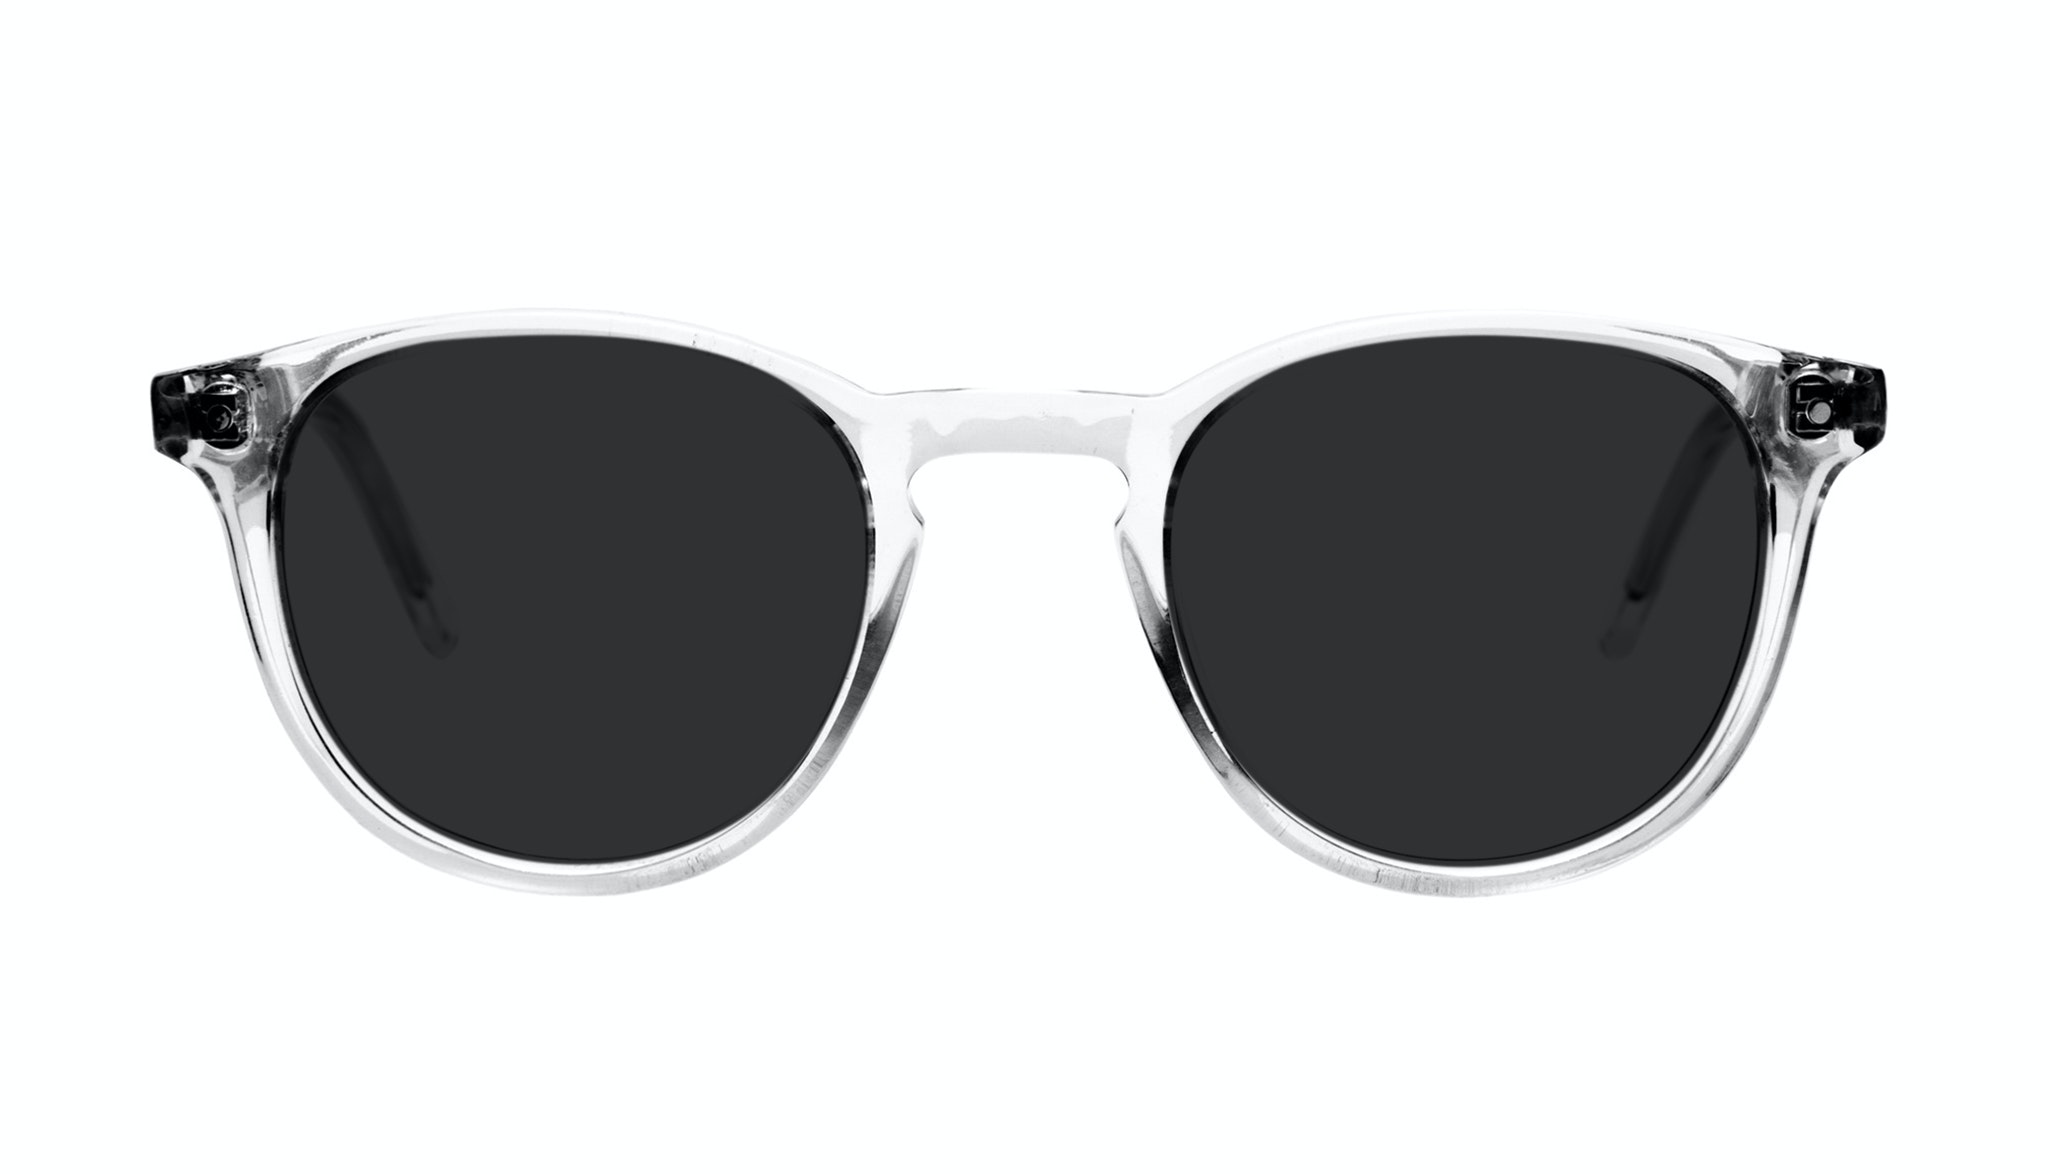 Affordable Fashion Glasses Round Sunglasses Men Cult Diamond